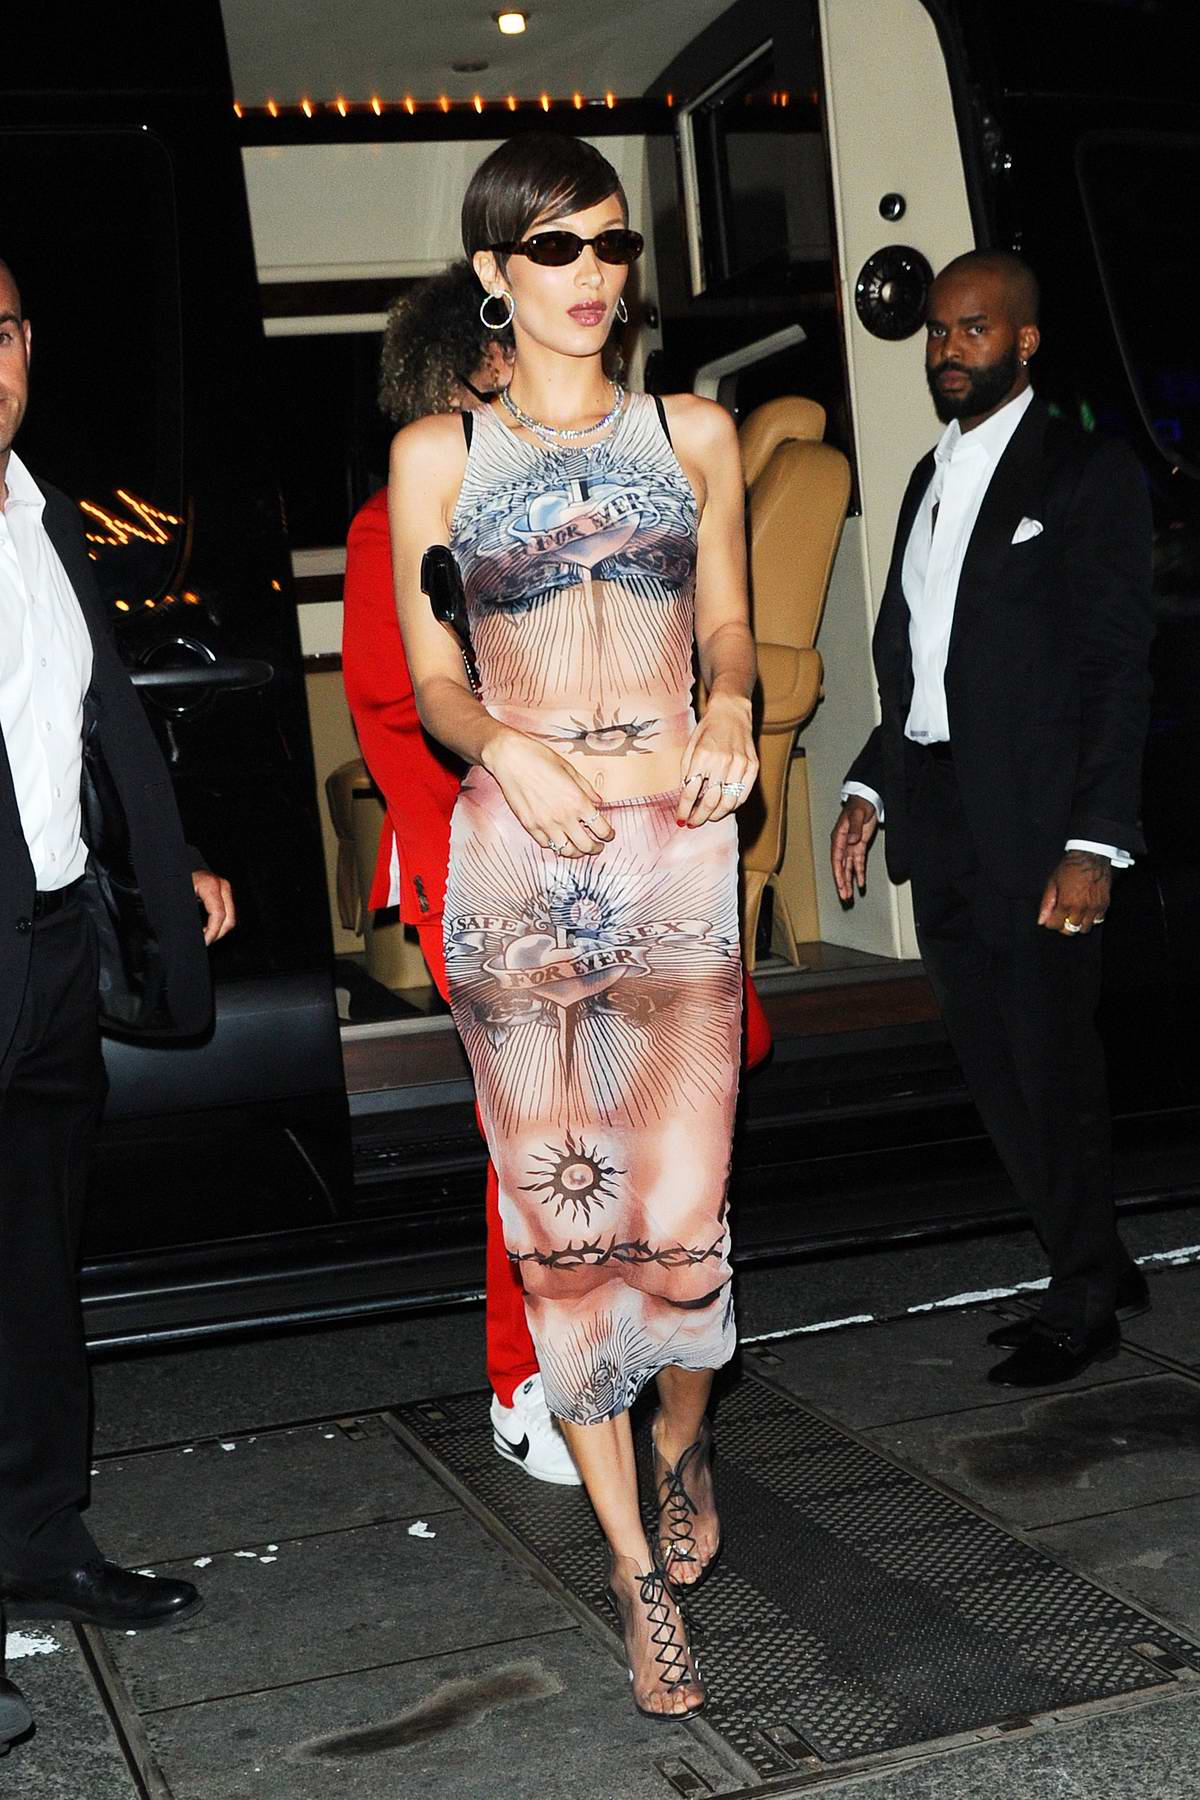 Bella Hadid rocks a graphic semi-sheer outfit as she heads to the 2019 Met Gala after-party in New York City